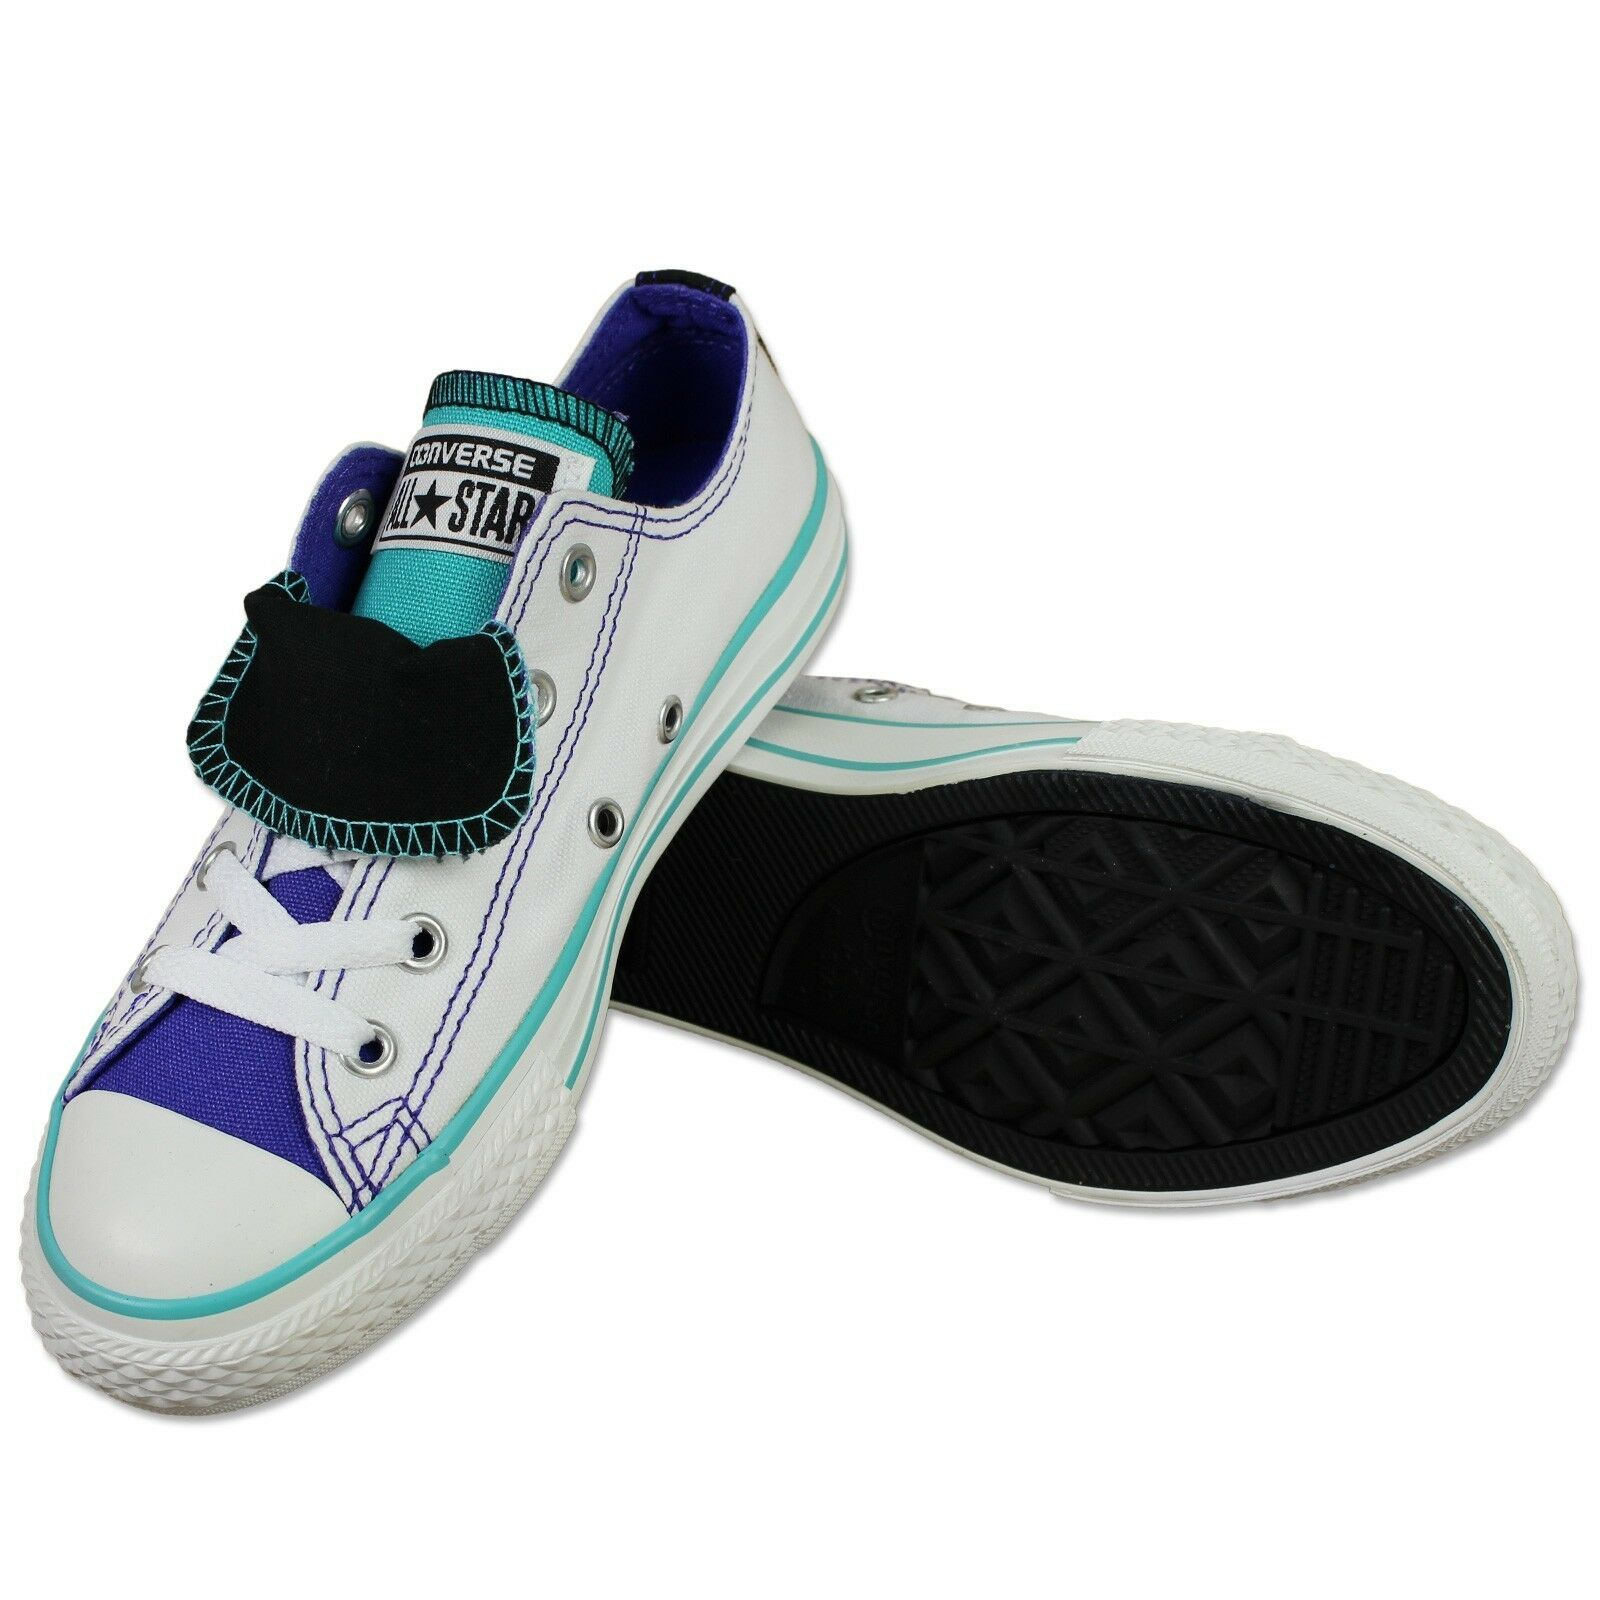 Converse All Star Doppelzunge Double Tongue Doppelzunge Star Taylor Chaussures Baskets Blanc 38 3e14b2